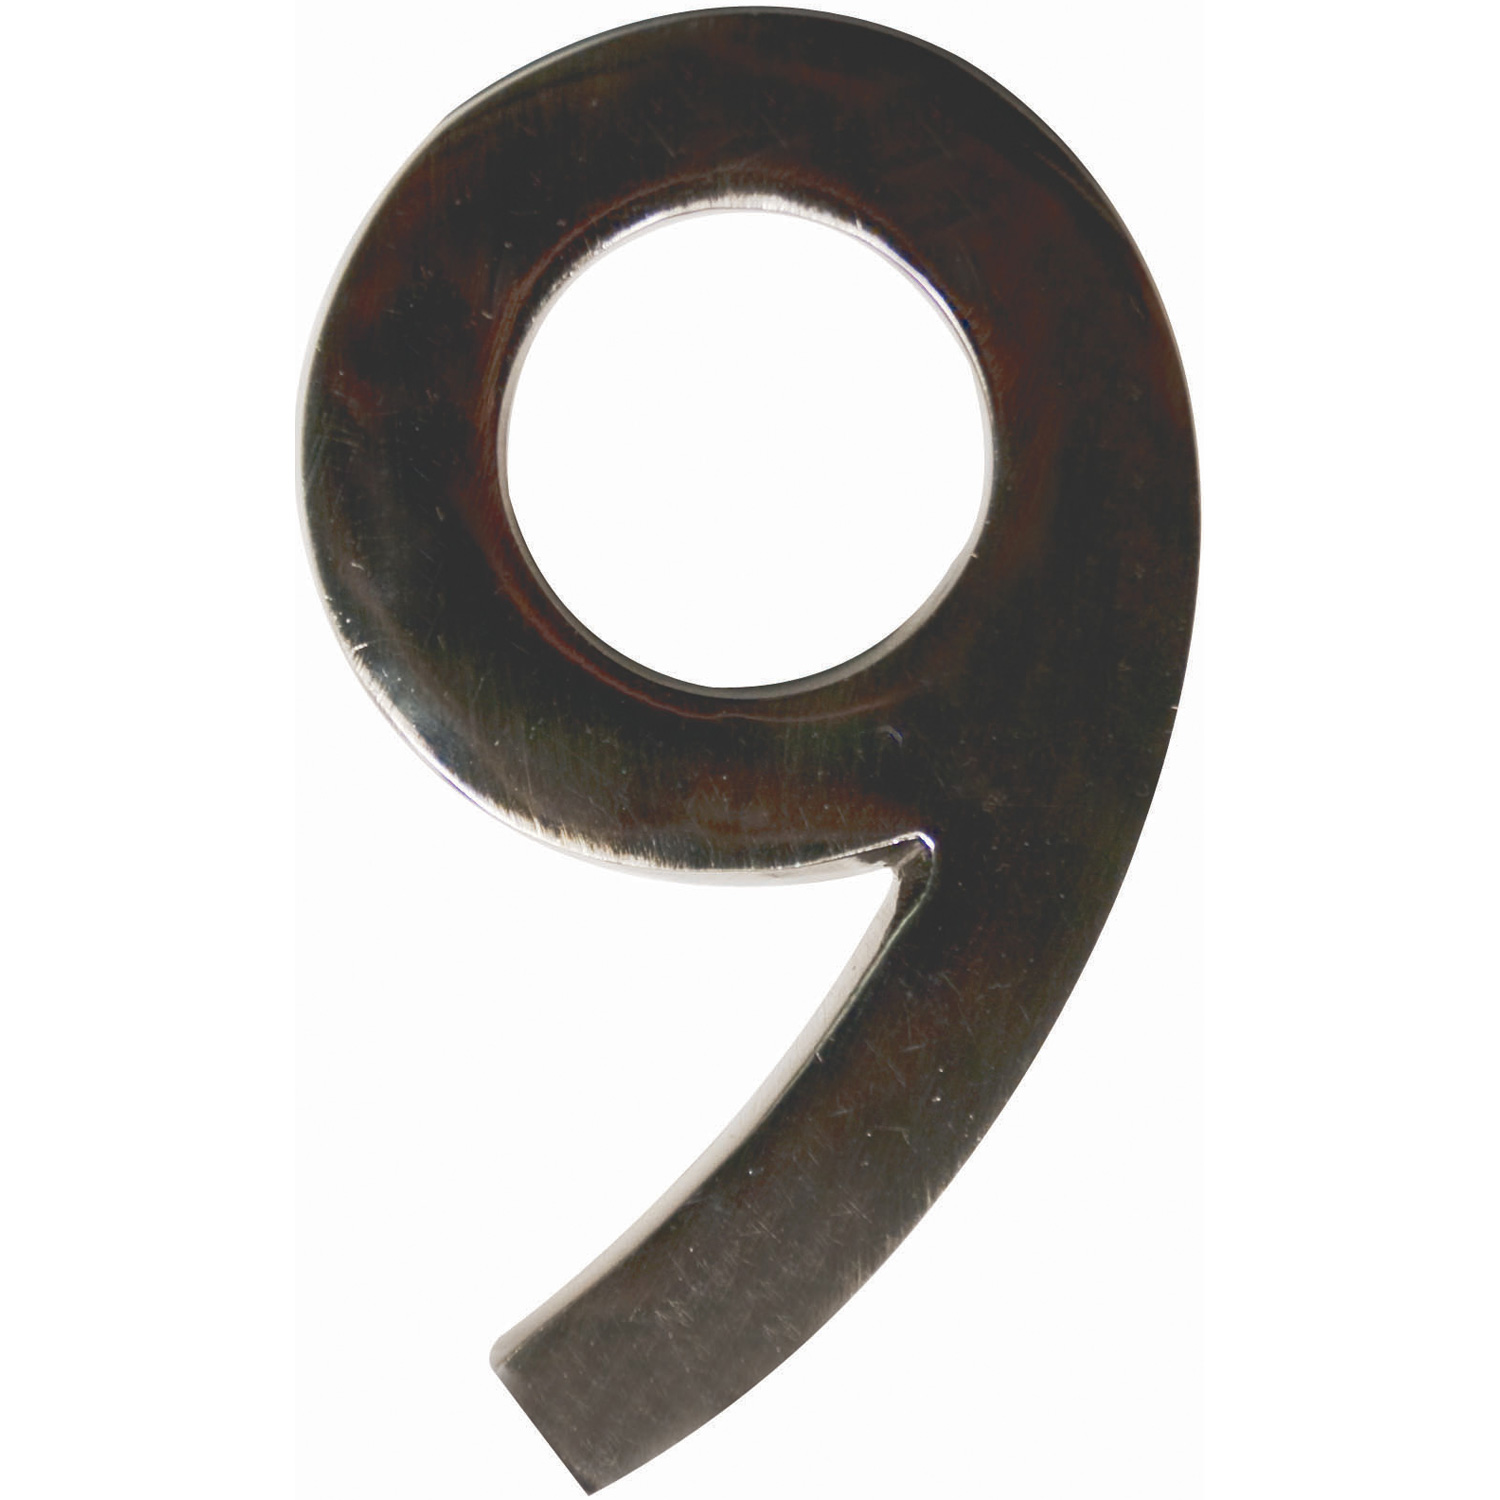 Modern style solid brass house numbers taymor canada for Modern house numbers canada